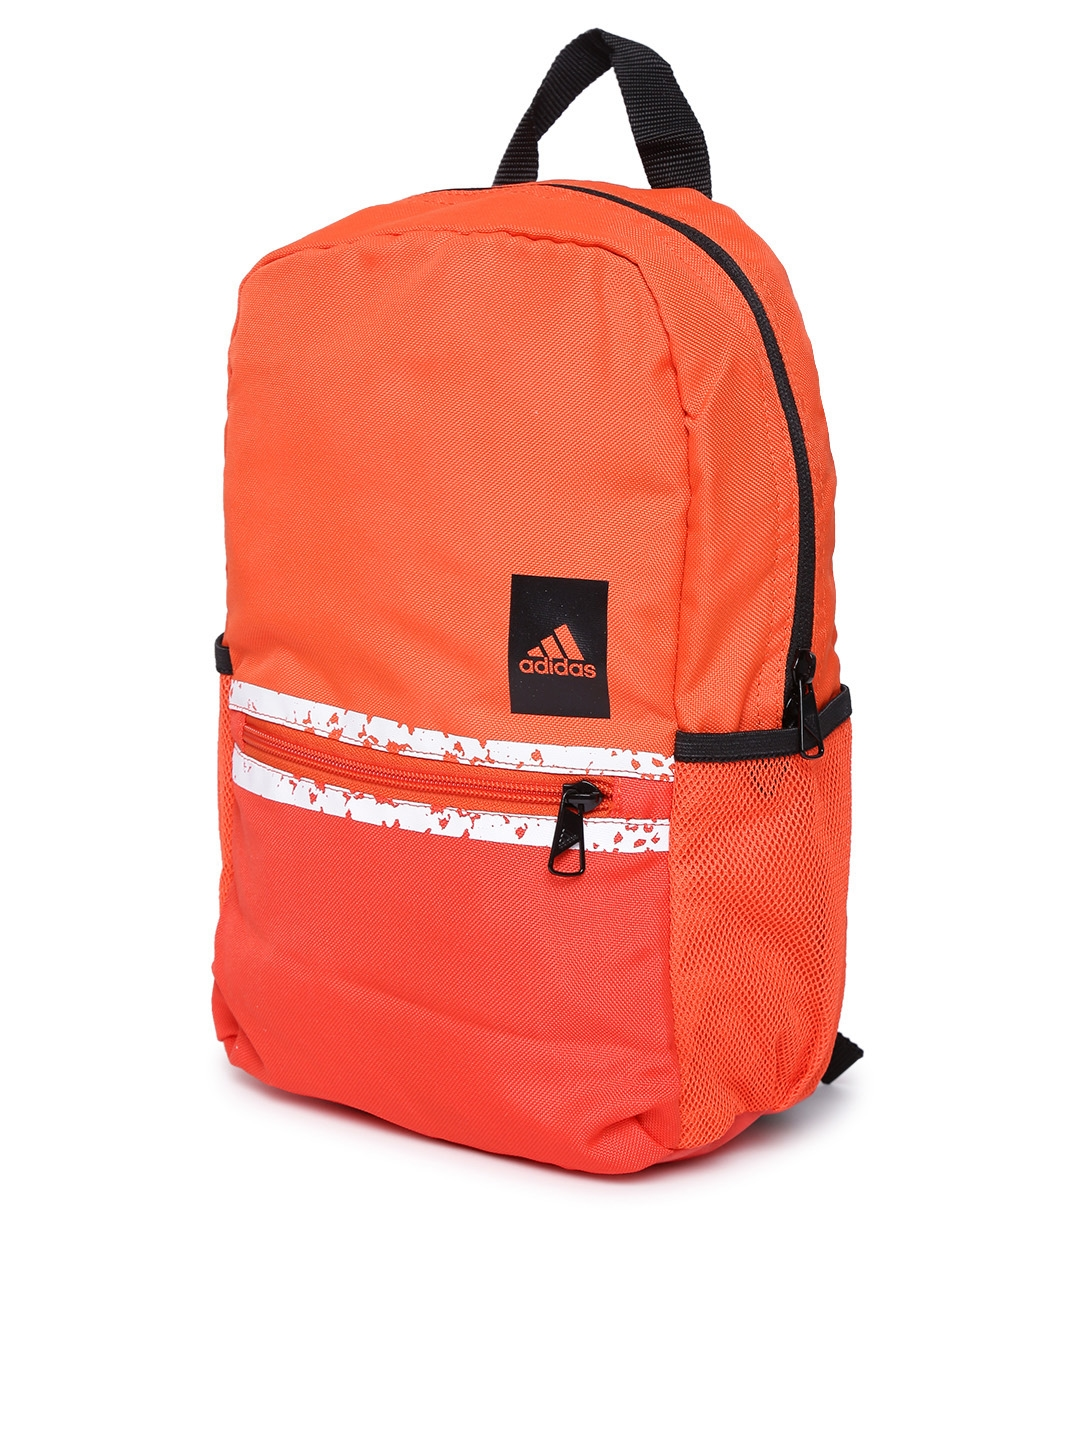 96e9f0afba Buy ADIDAS Unisex Orange Solid Classic Backpack - Backpacks for ...